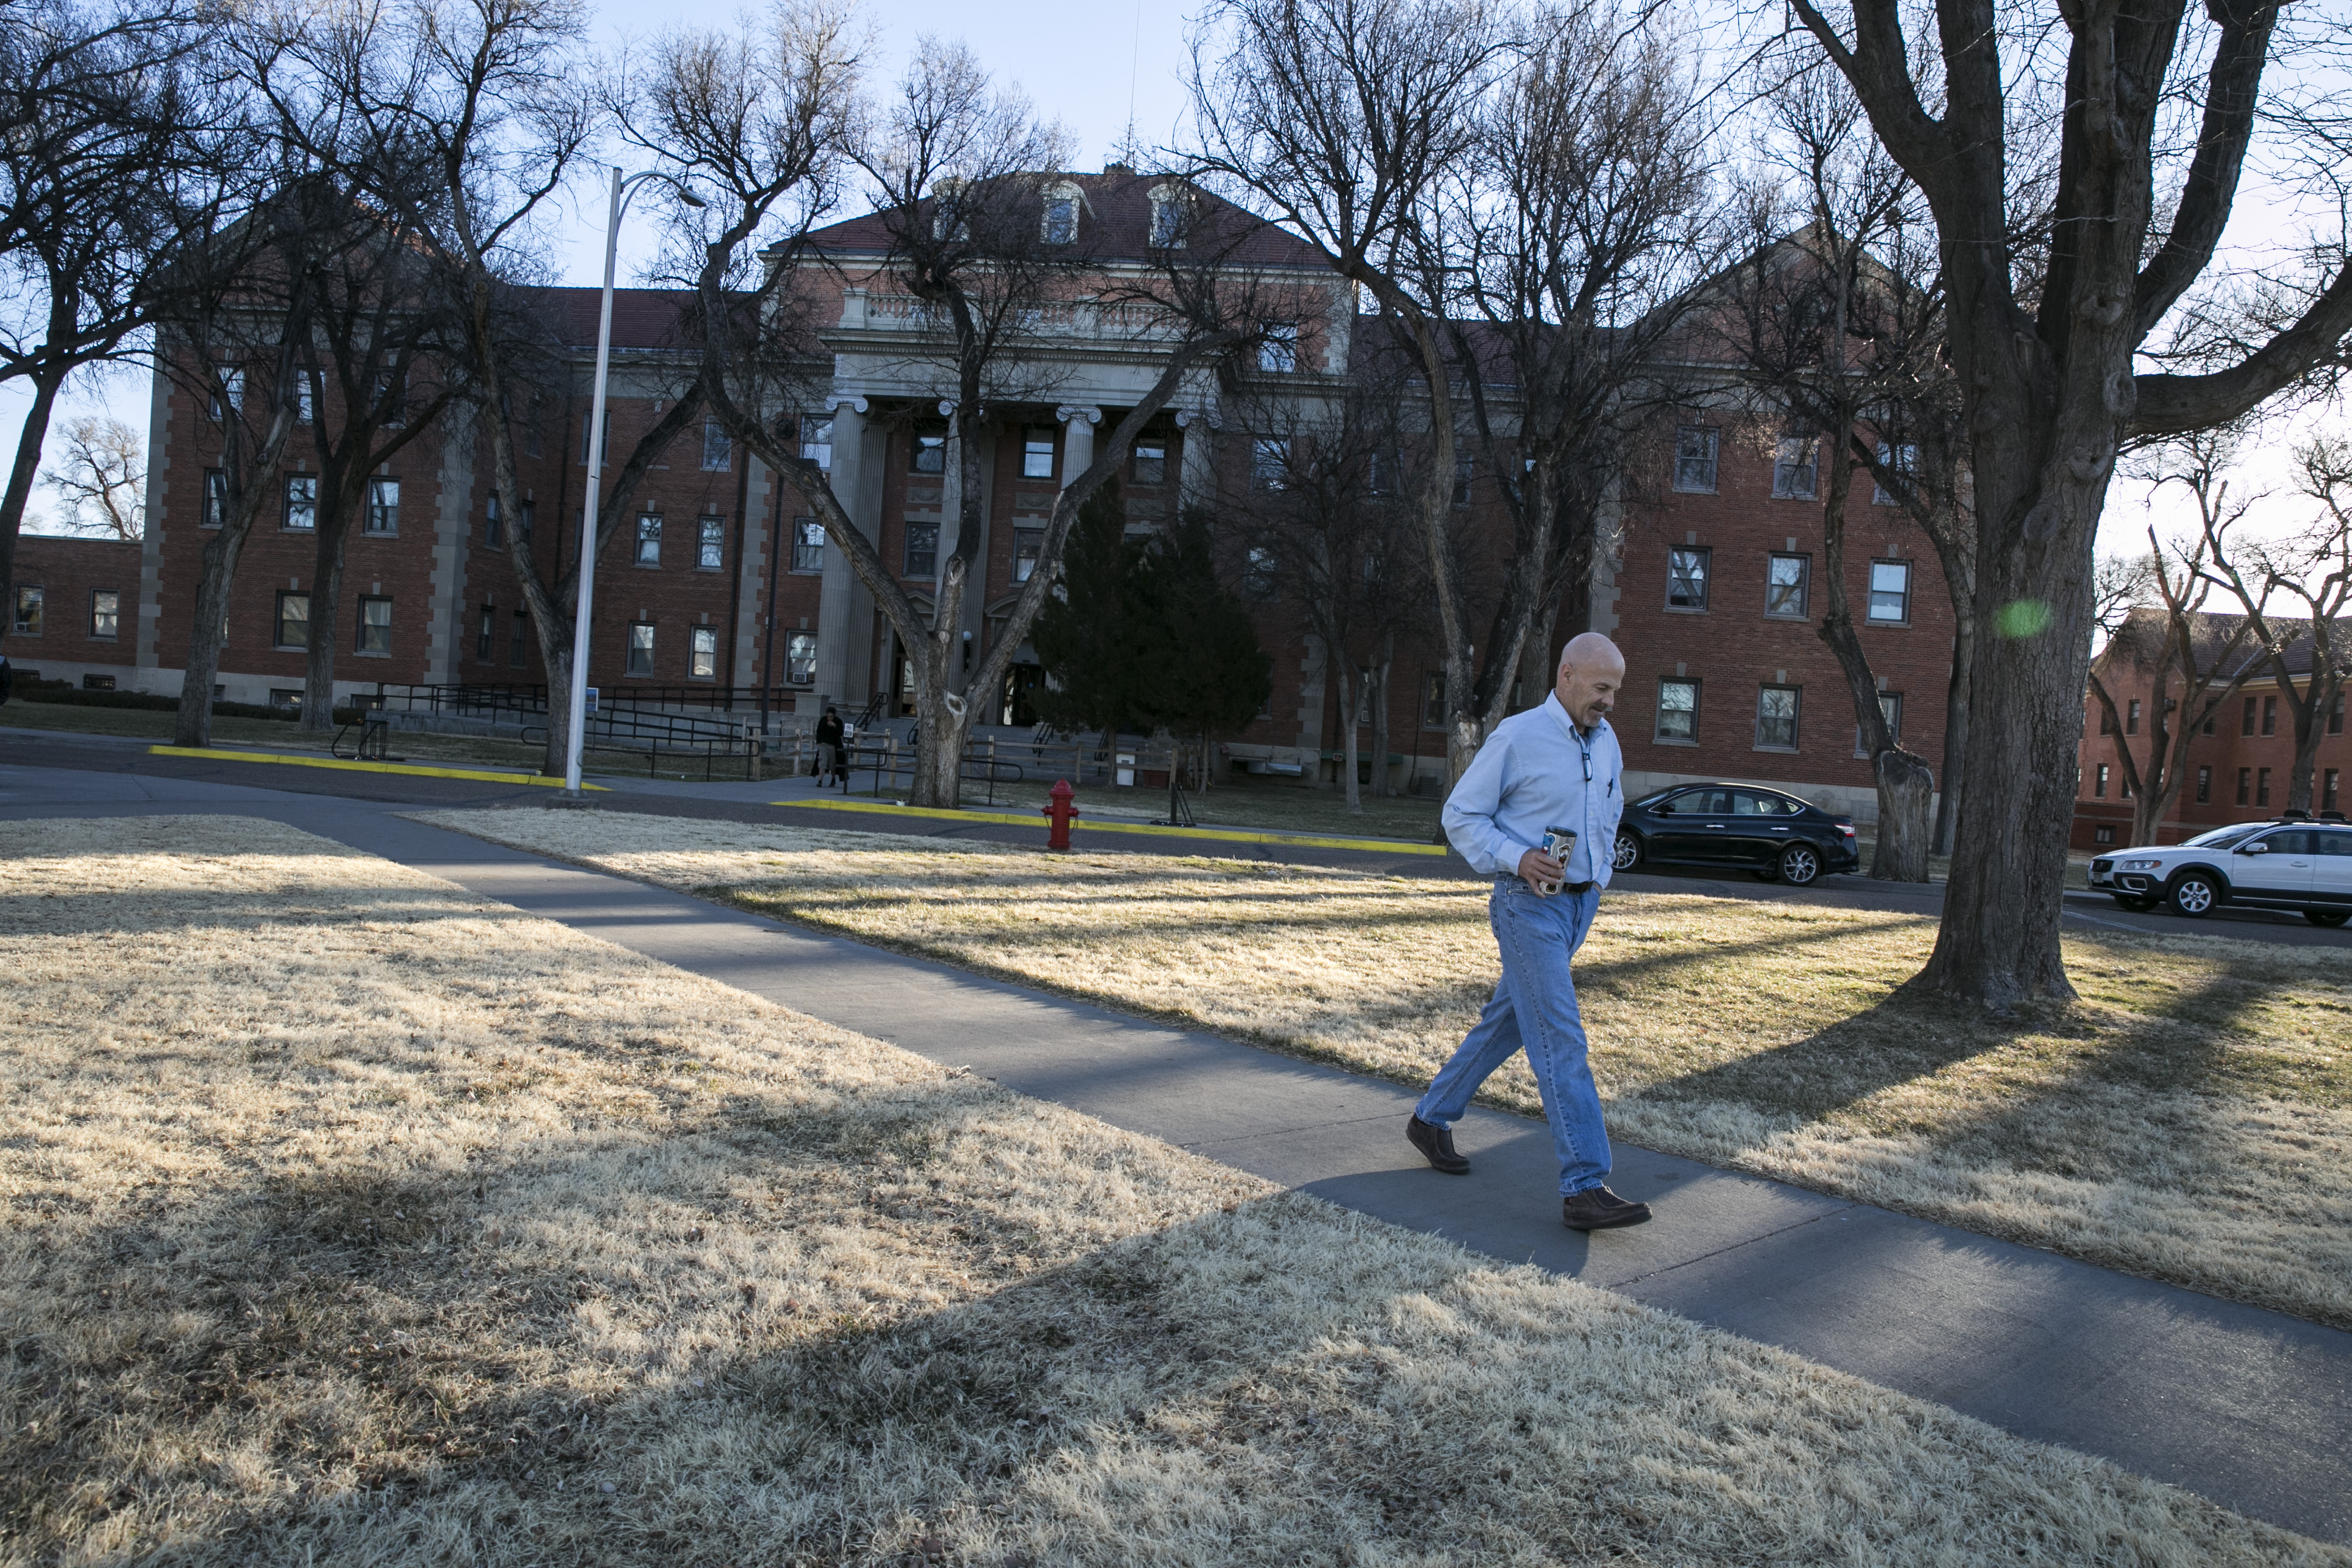 <p>Darren Fowler, a resident of Fort Lyon, takes an early morning walk through the campus east of Las Animas, Colo., Thursday, Feb. 23, 2017.</p>